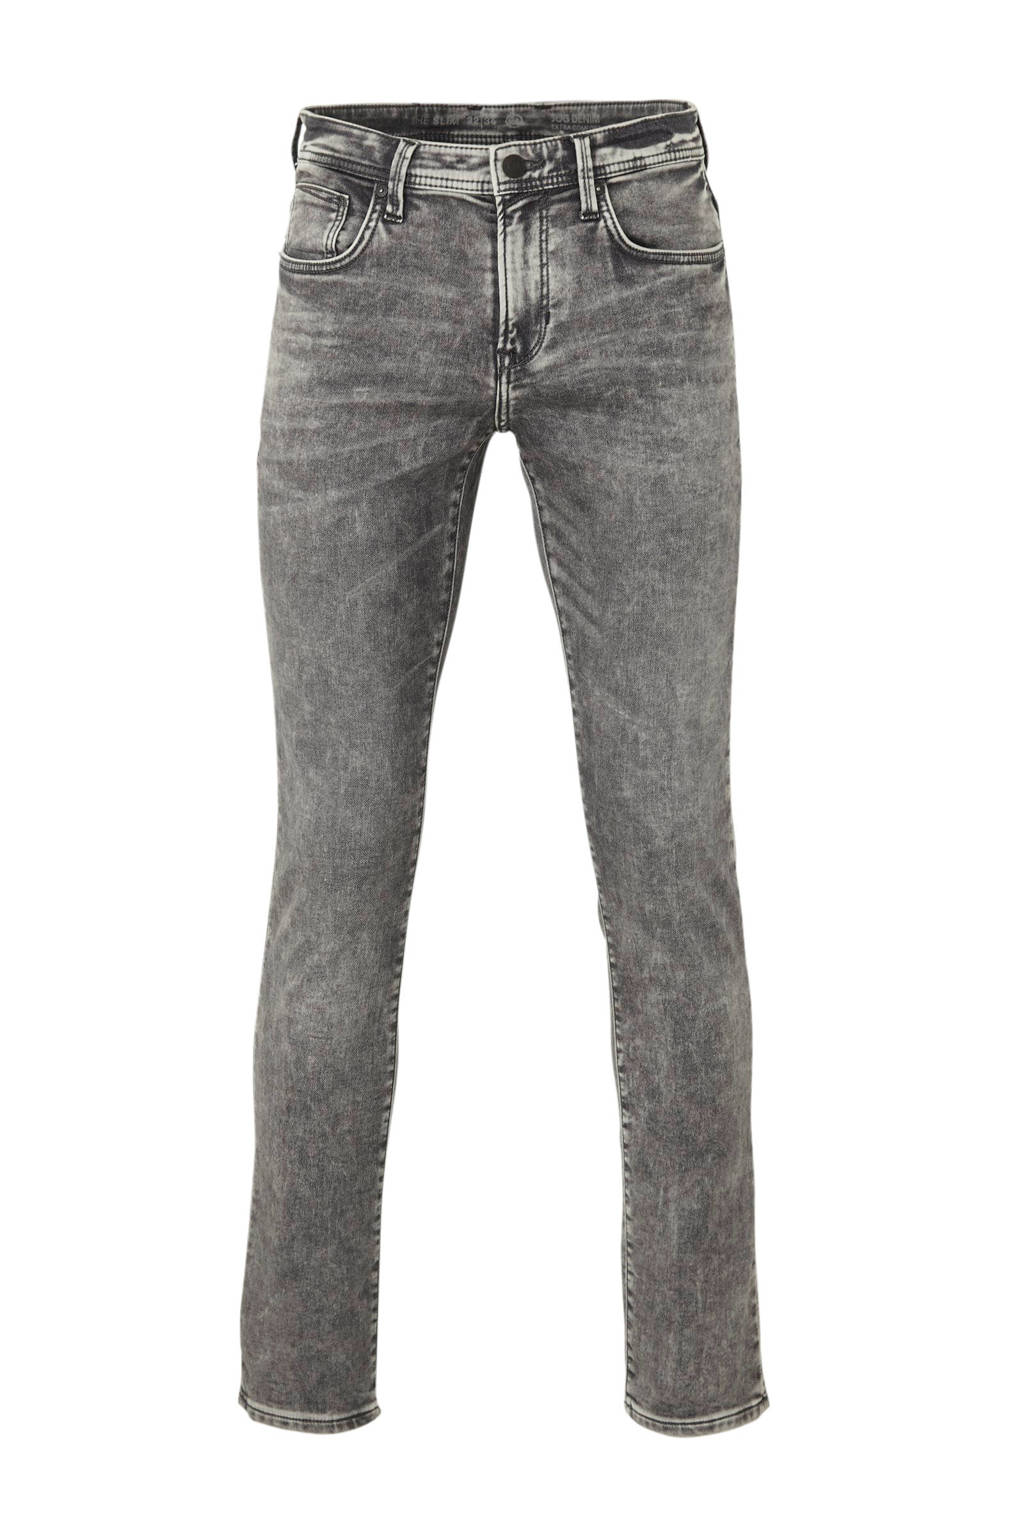 C&A regular fit jog denim grijs, Grijs